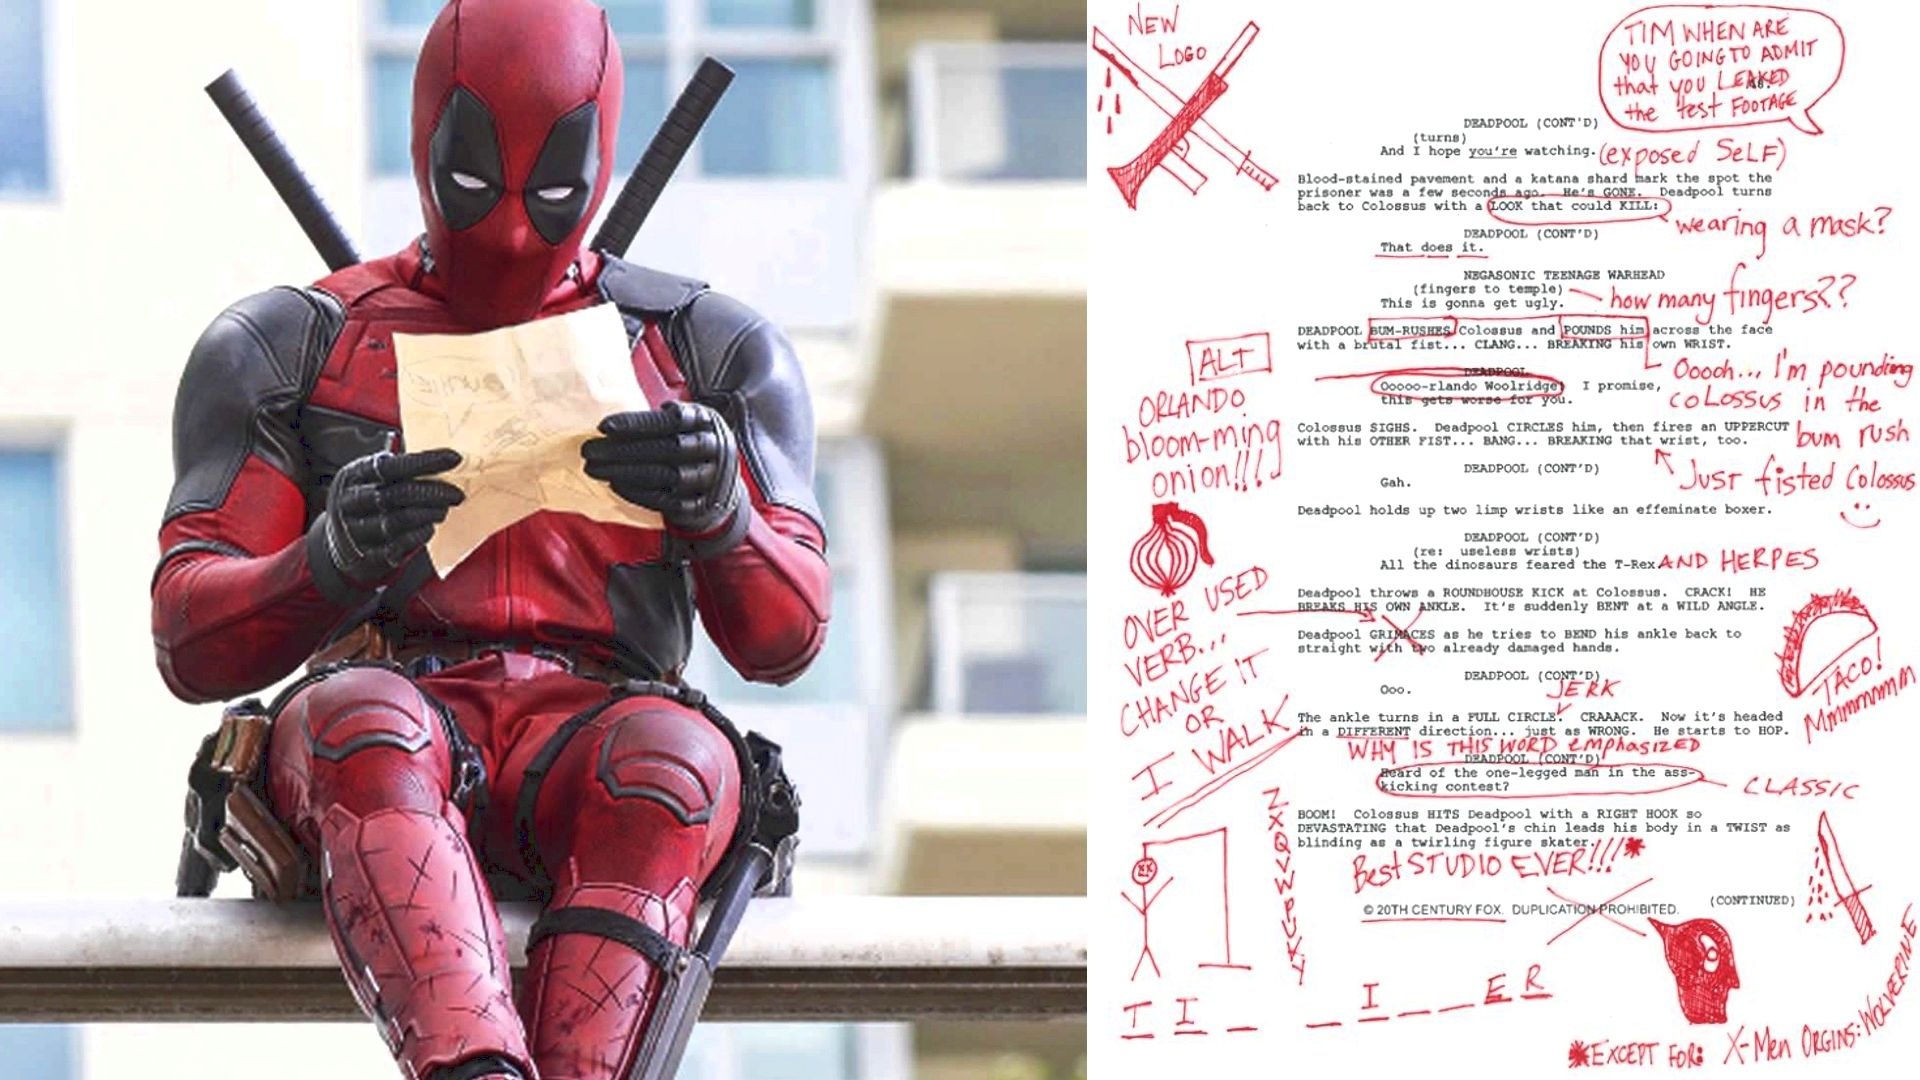 Read an Excerpt From the DEADPOOL Script With Deadpool